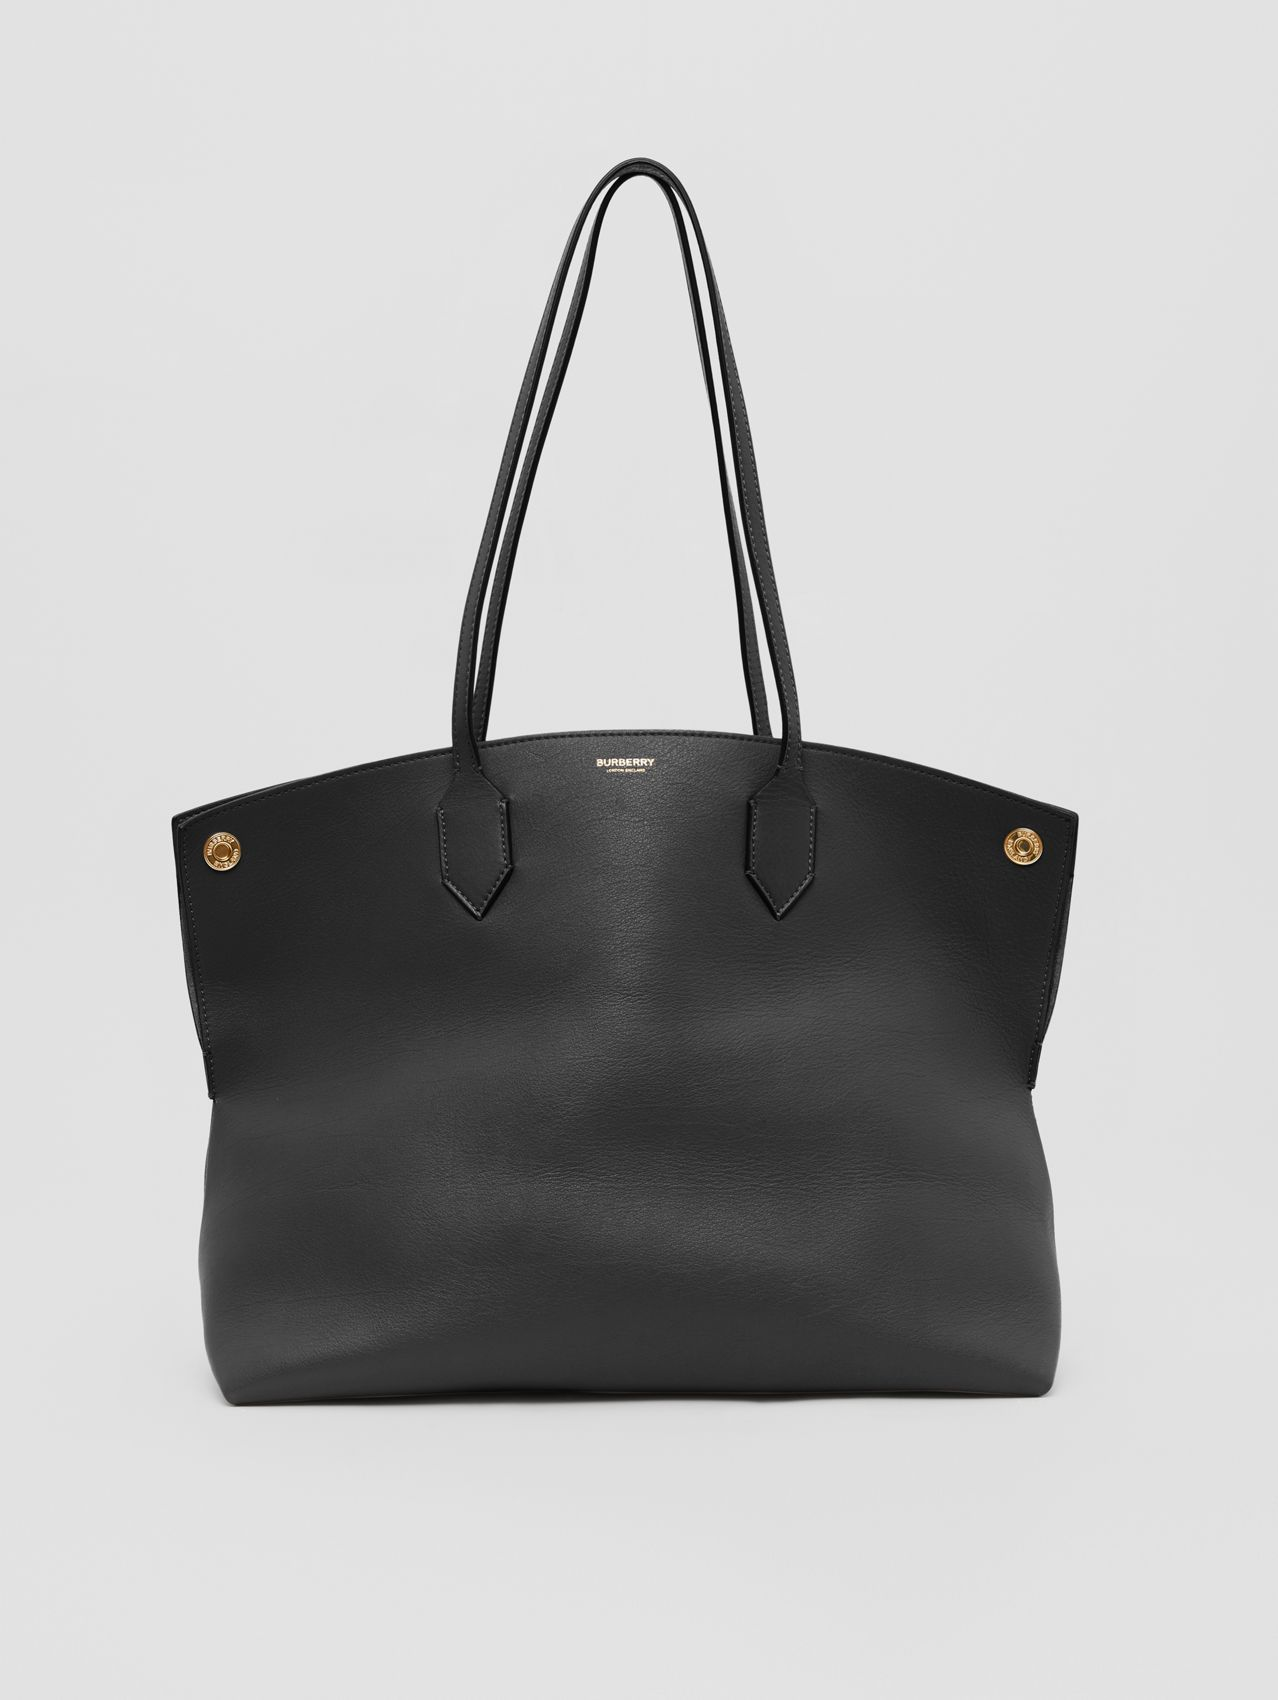 Medium Leather Society Tote in Black